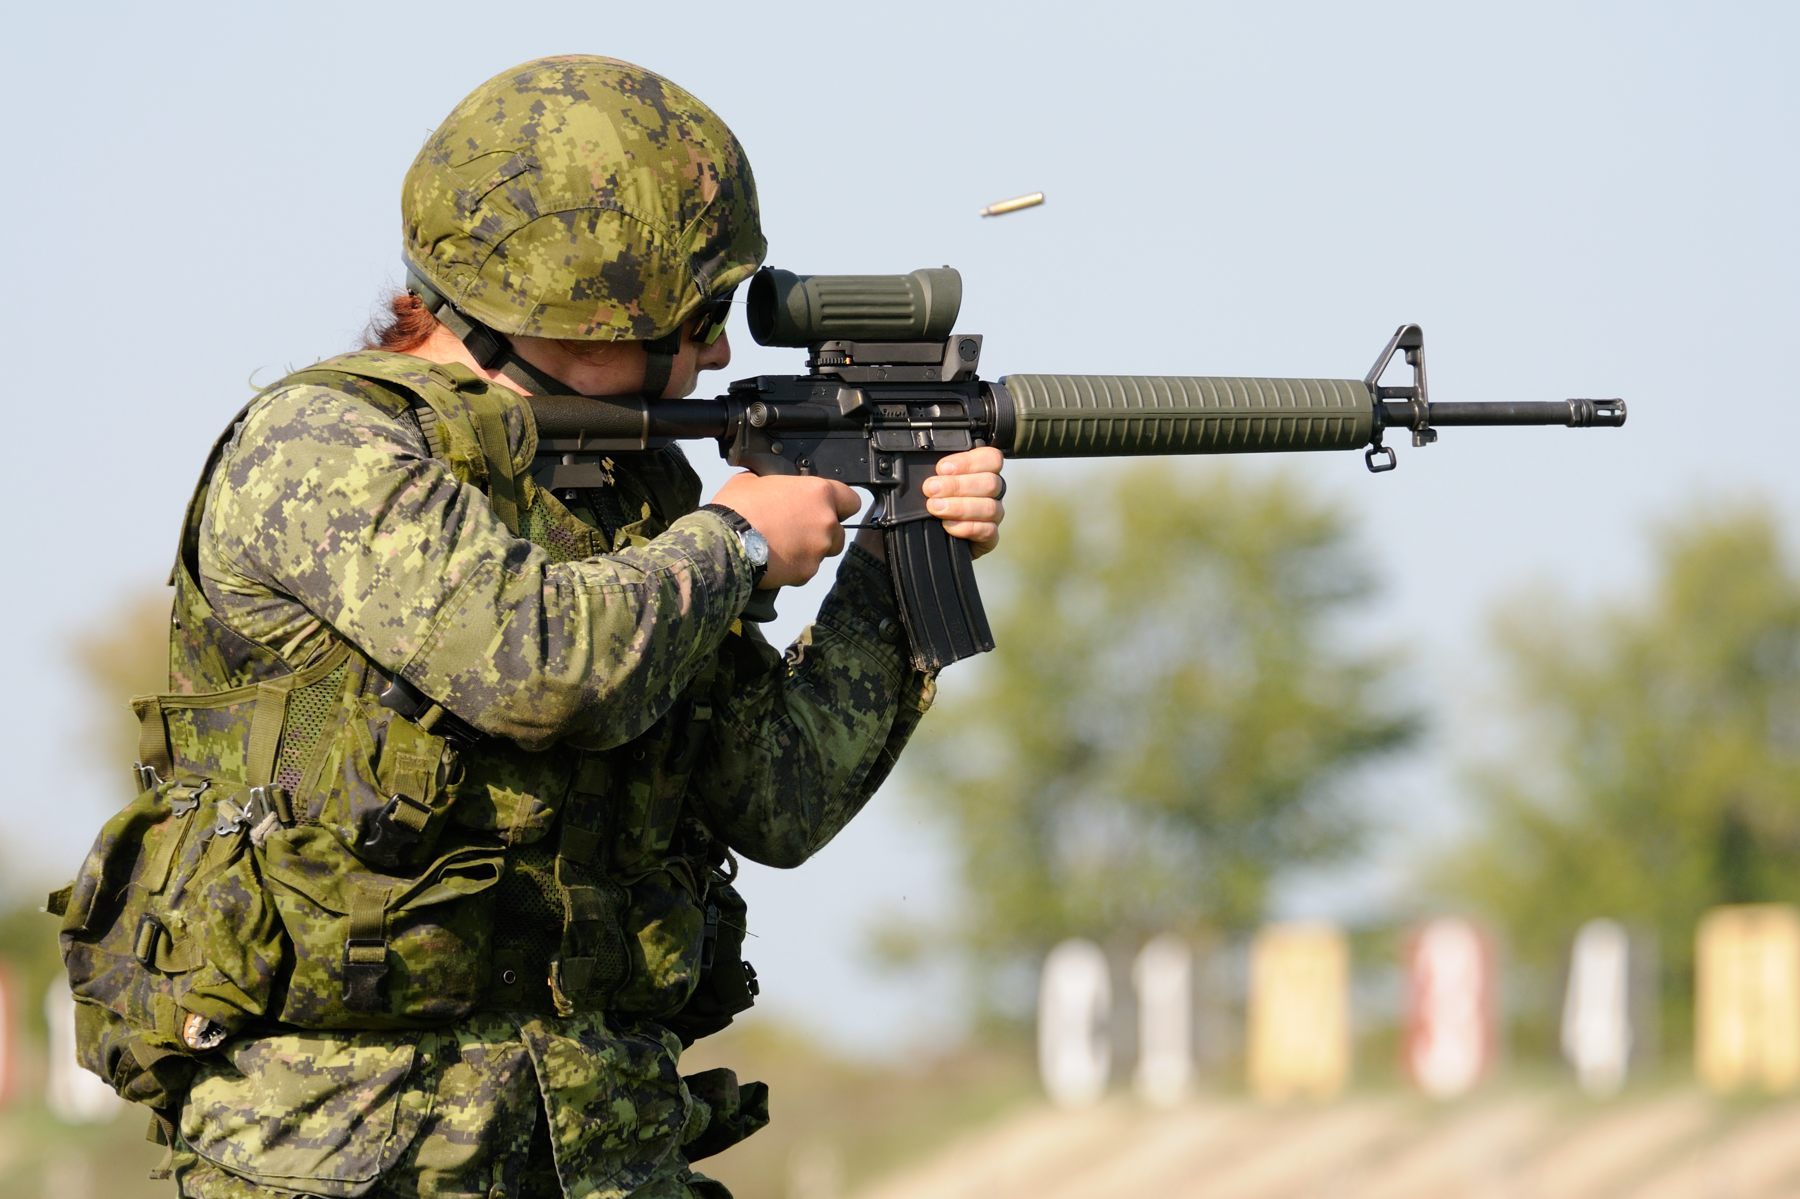 A female Canadian Army soldier dressed in camouflage combat gear shoots an assault rifle on a shooting range.